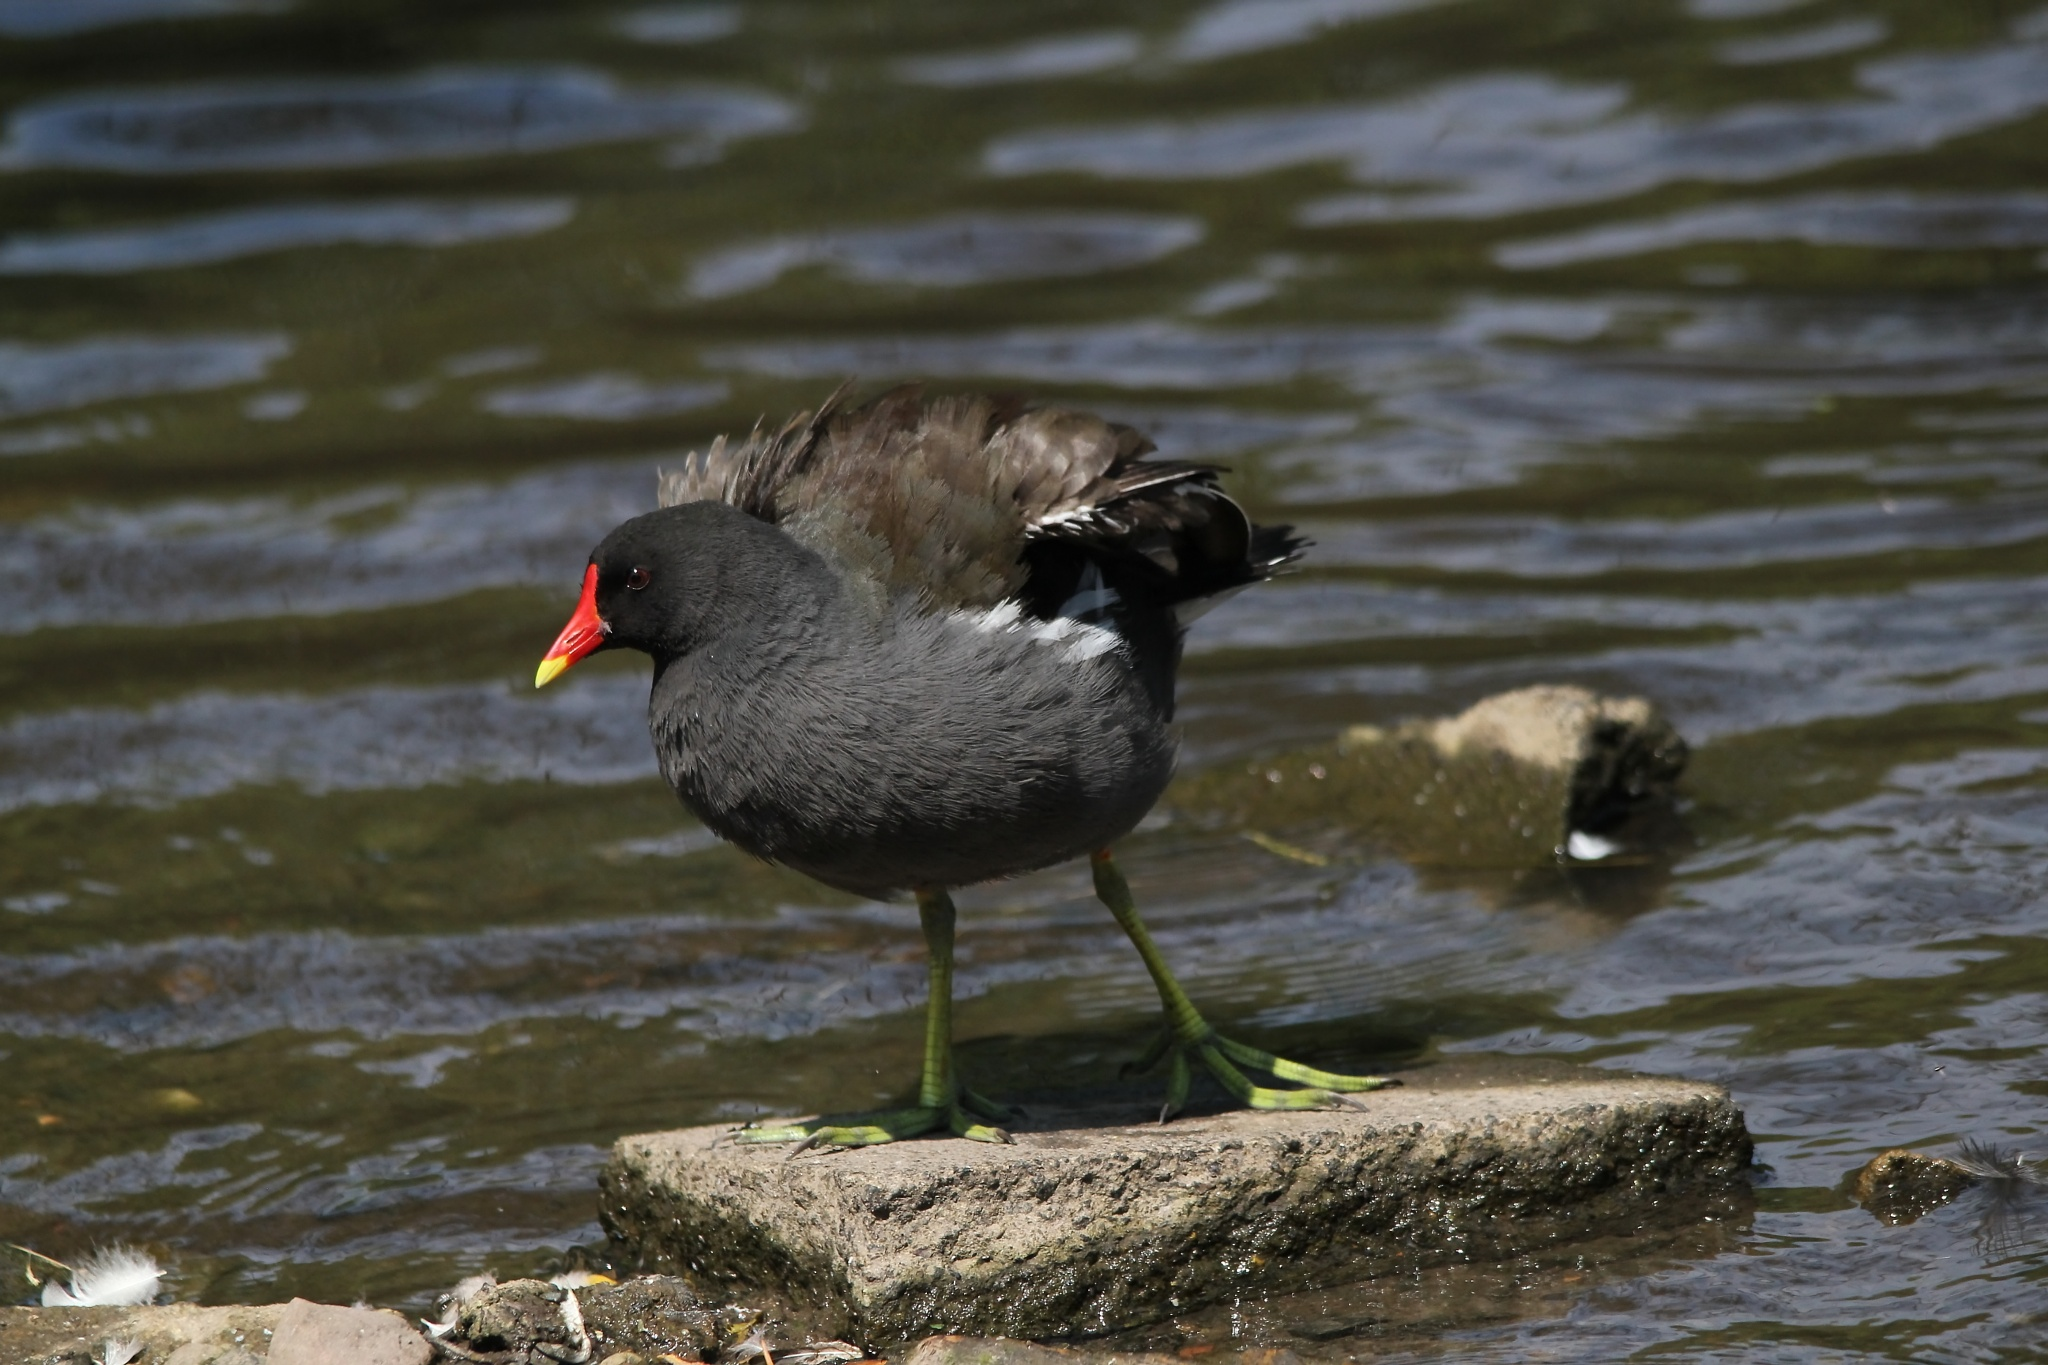 Common Moorhen by annecotton